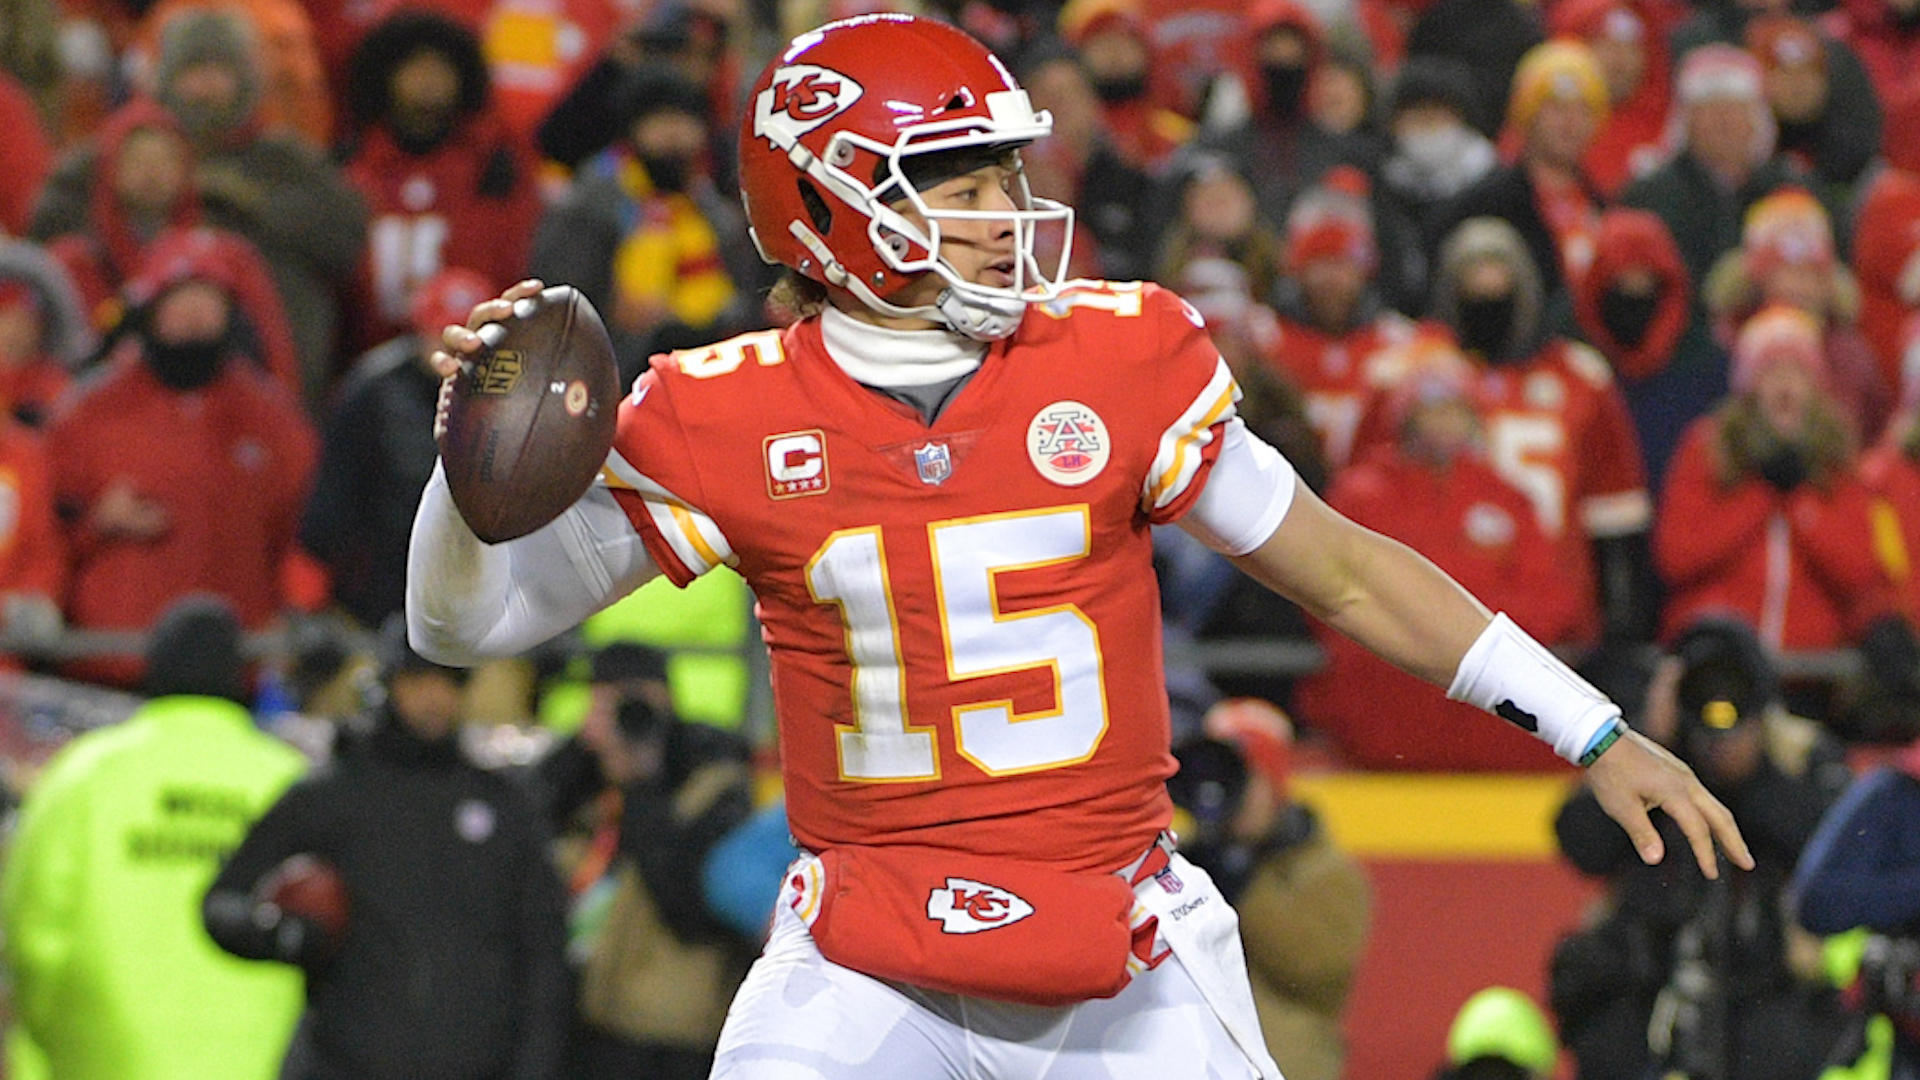 2019 Fantasy Football Team Previews: Will the Chiefs be a juggernaut again in 2019?